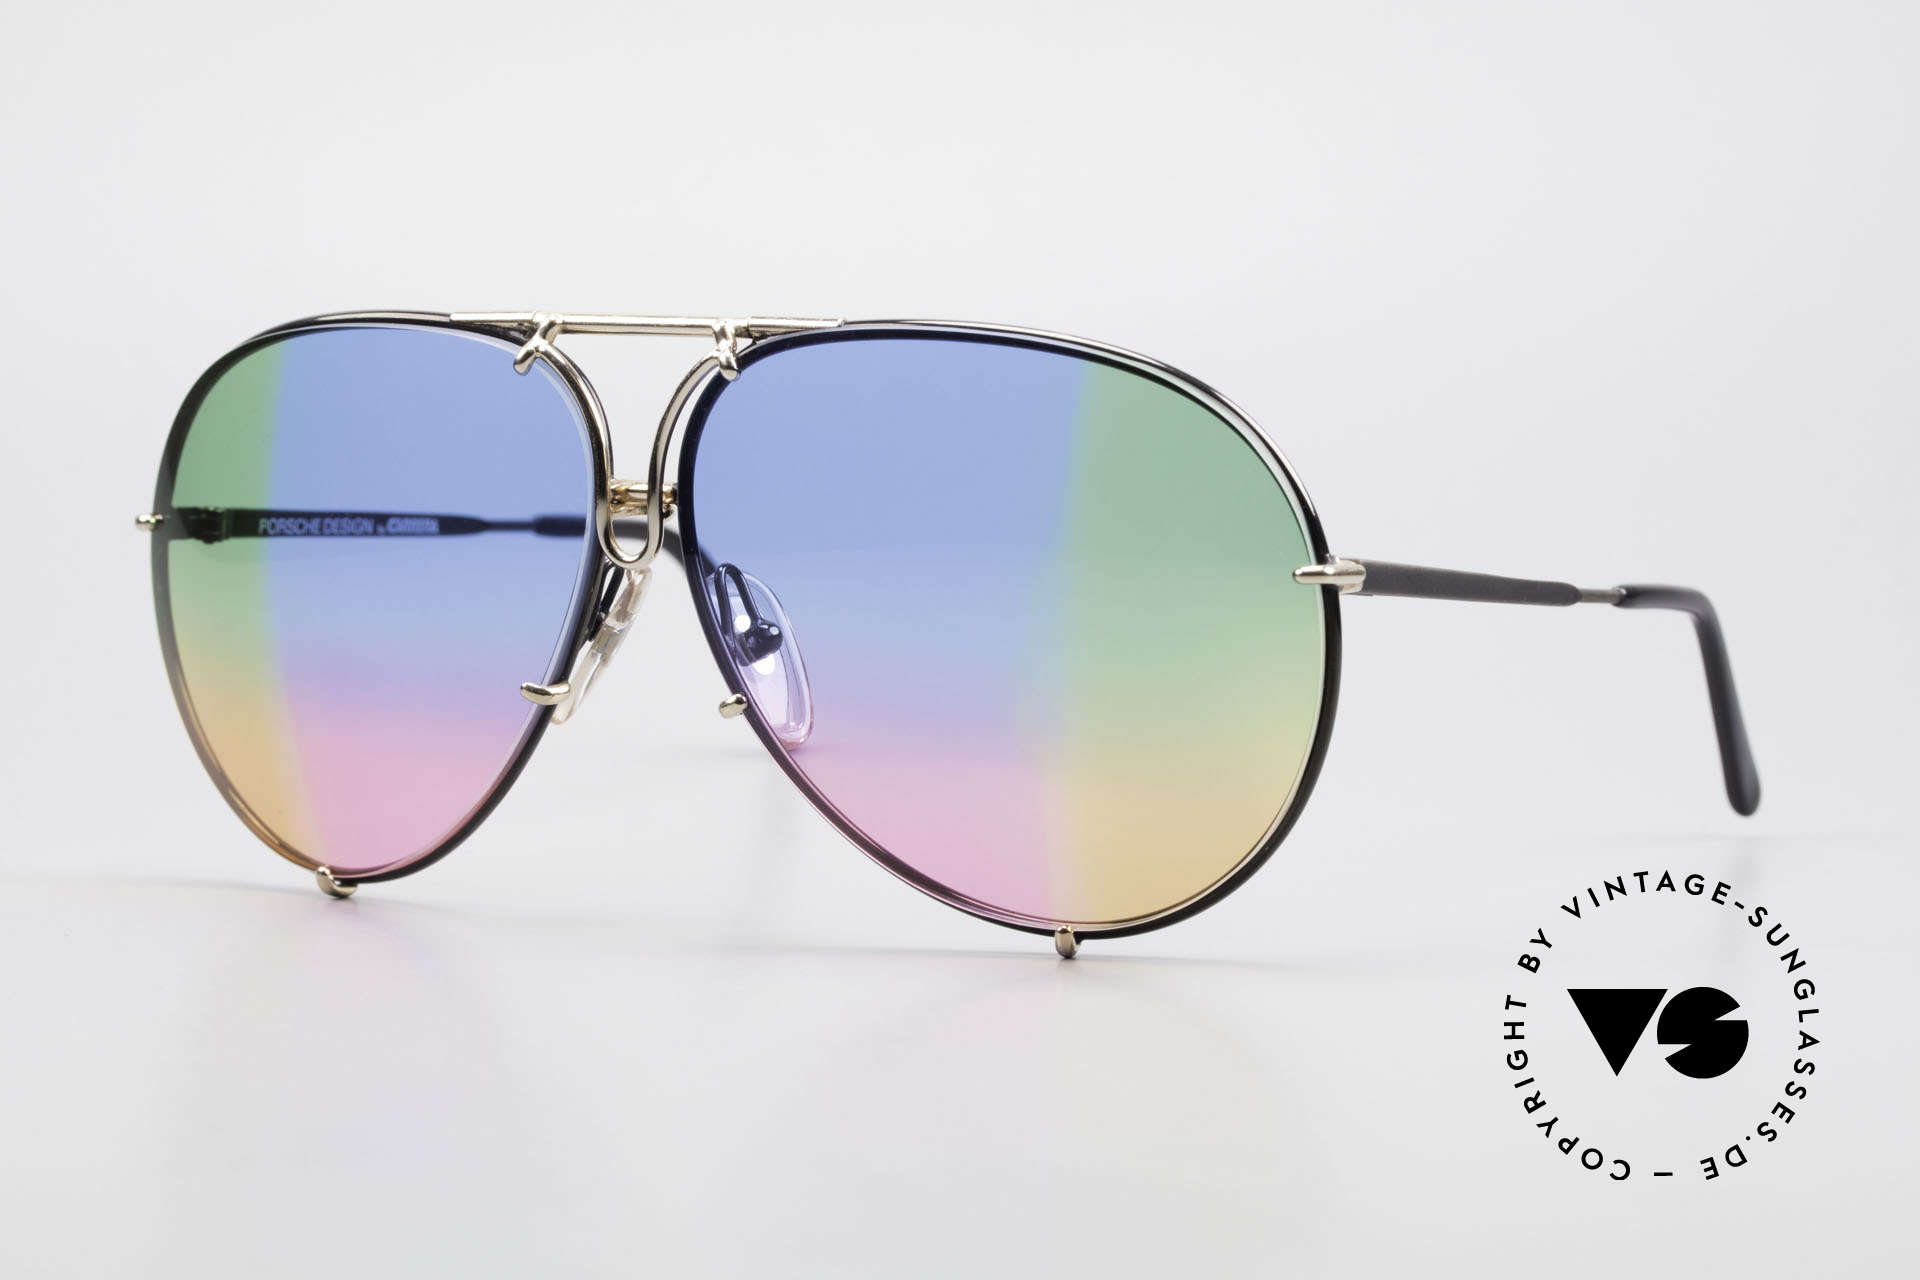 Porsche 5623 One Of A Kind 4times Gradient, vintage Porsche Design by Carrera shades from 1987, Made for Men and Women